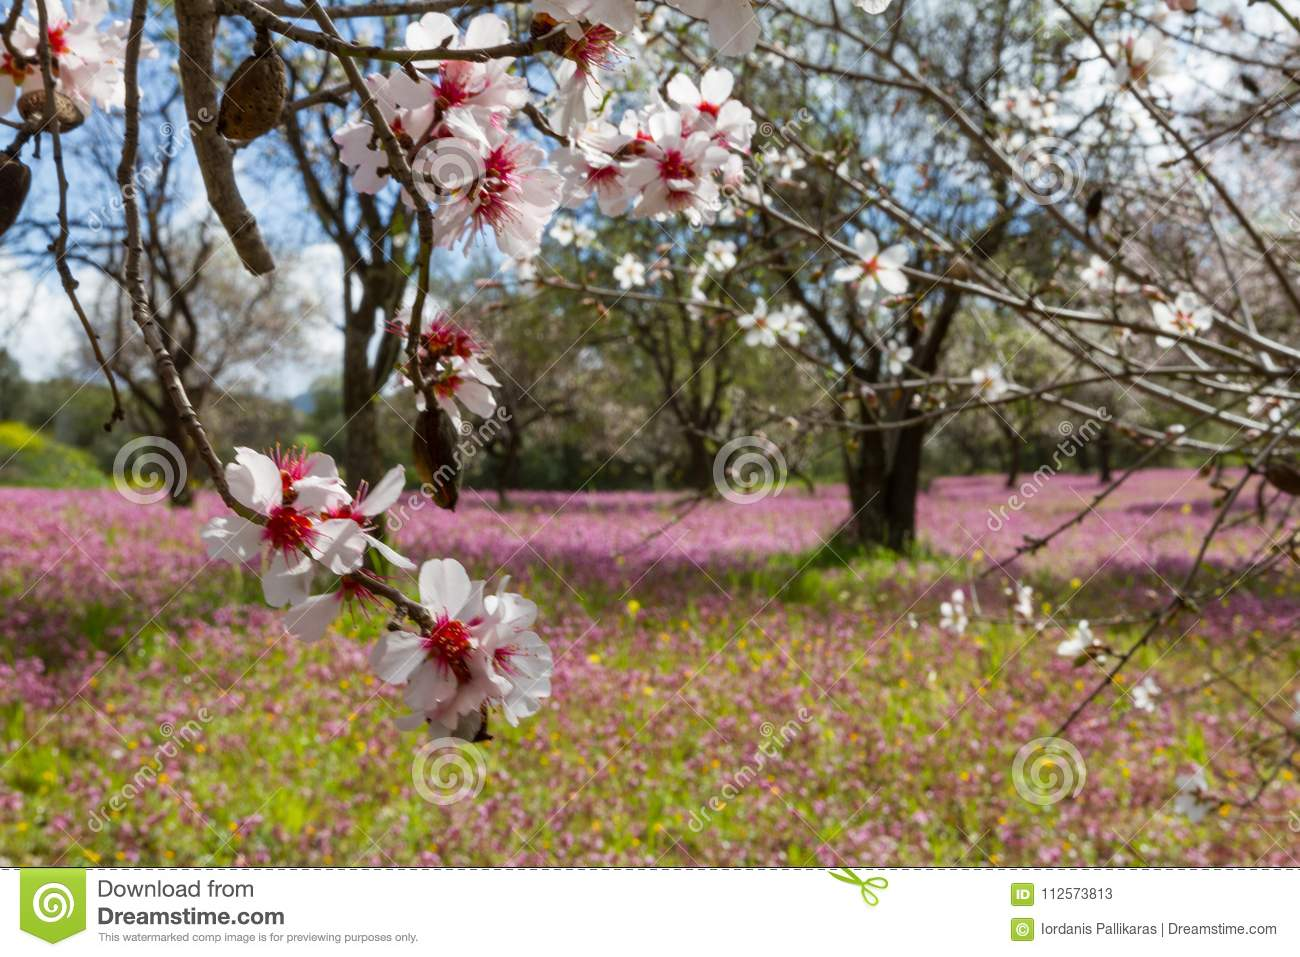 Blossoming almond trees in a field with purple flowers in spring download blossoming almond trees in a field with purple flowers in spring stock image image mightylinksfo